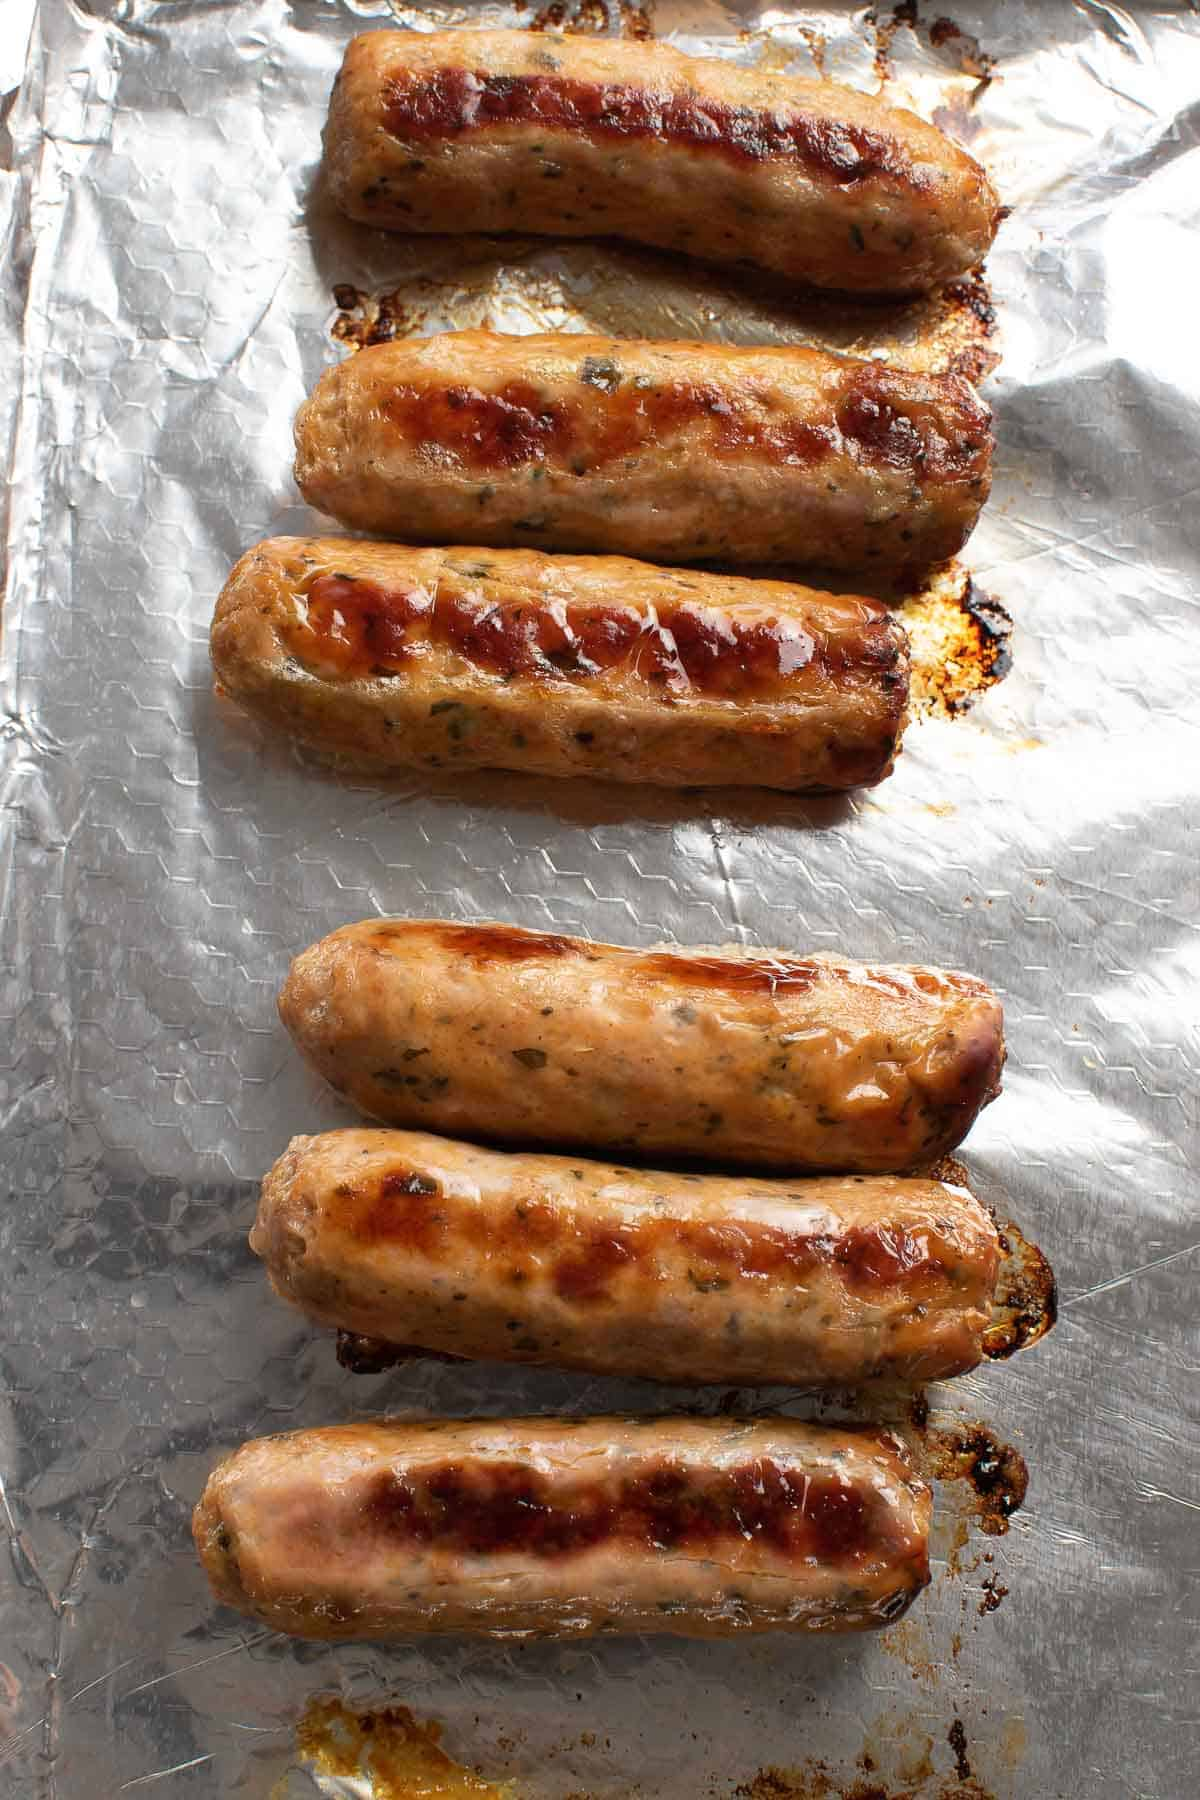 Baked Italian sausages.